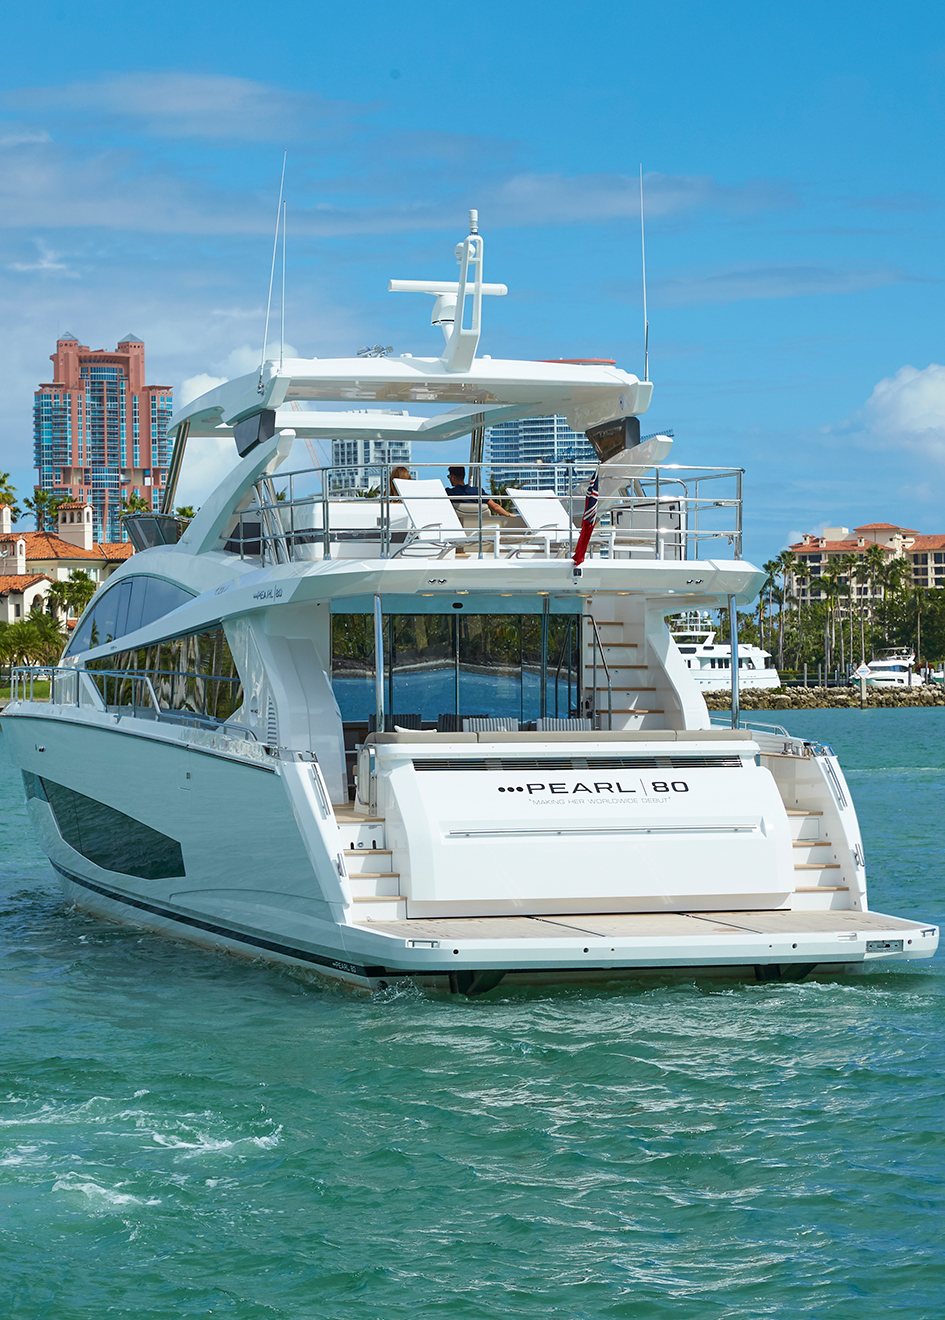 aft-view-of-the-pearl-80-yacht